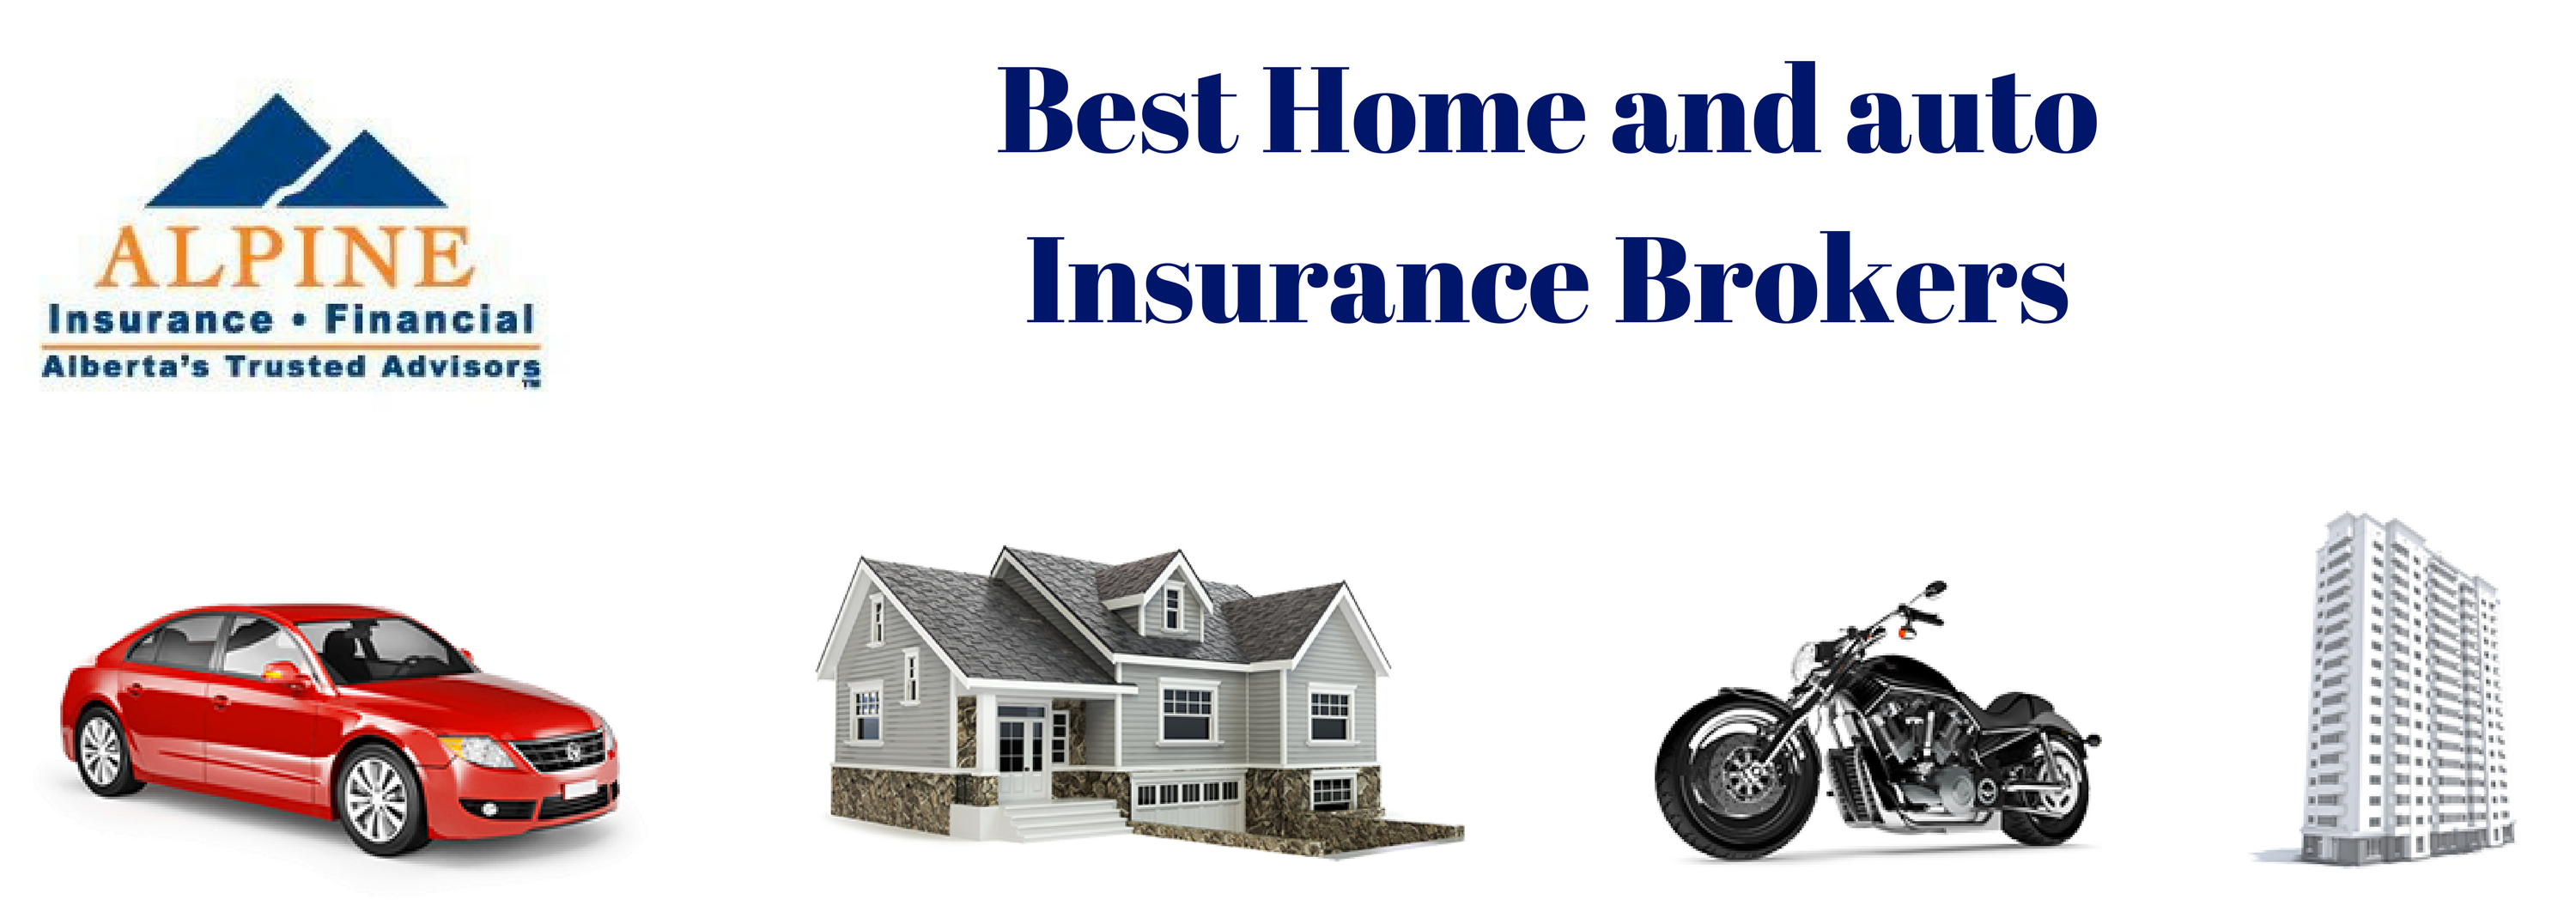 Home Insurance Brokers (With images) Business insurance